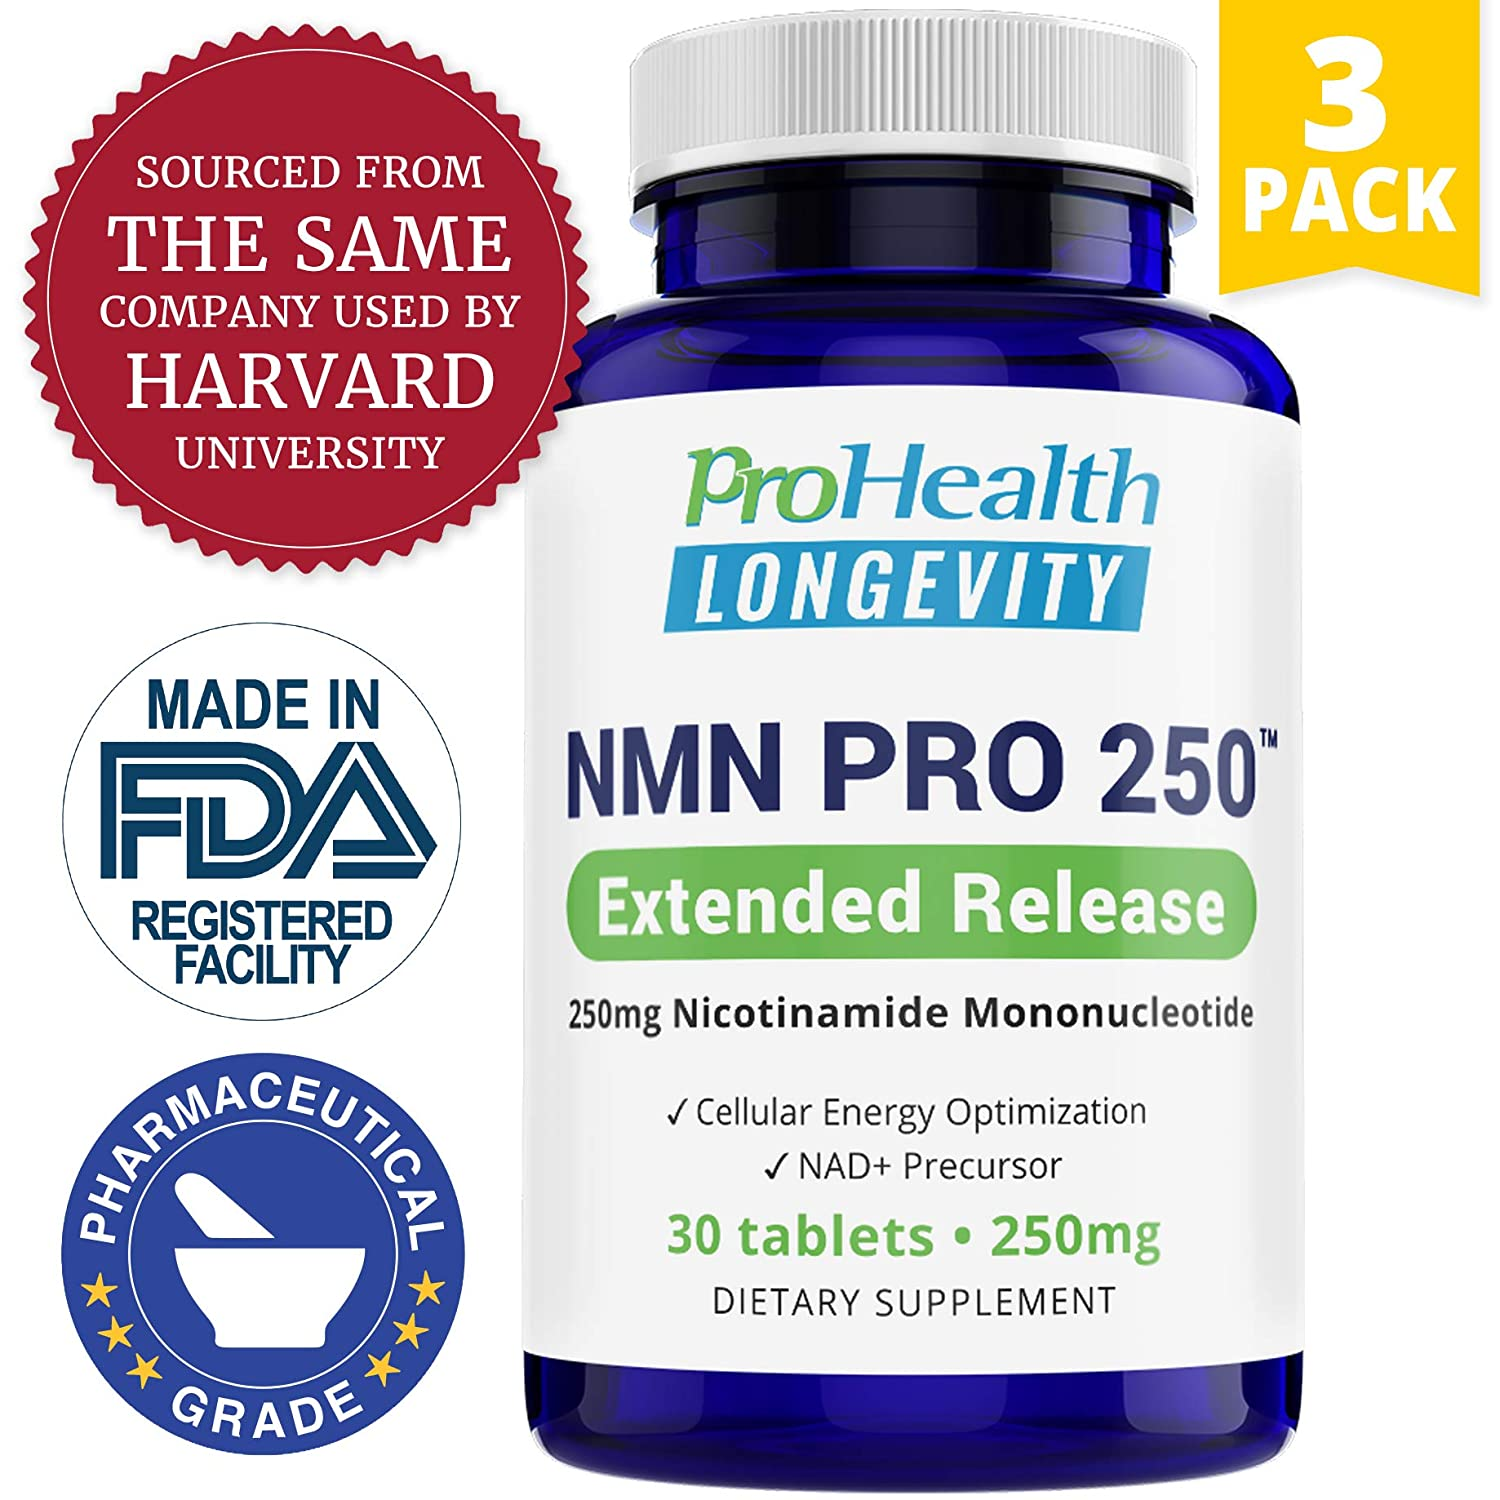 ProHealth 3-Pack NMN Pro 250 Extended Release 250 mg nicotinamide mononucleotide, 30 Tablets per Bottle NAD Precursor Supports Anti-Aging, Longevity and Energy Non-GMO